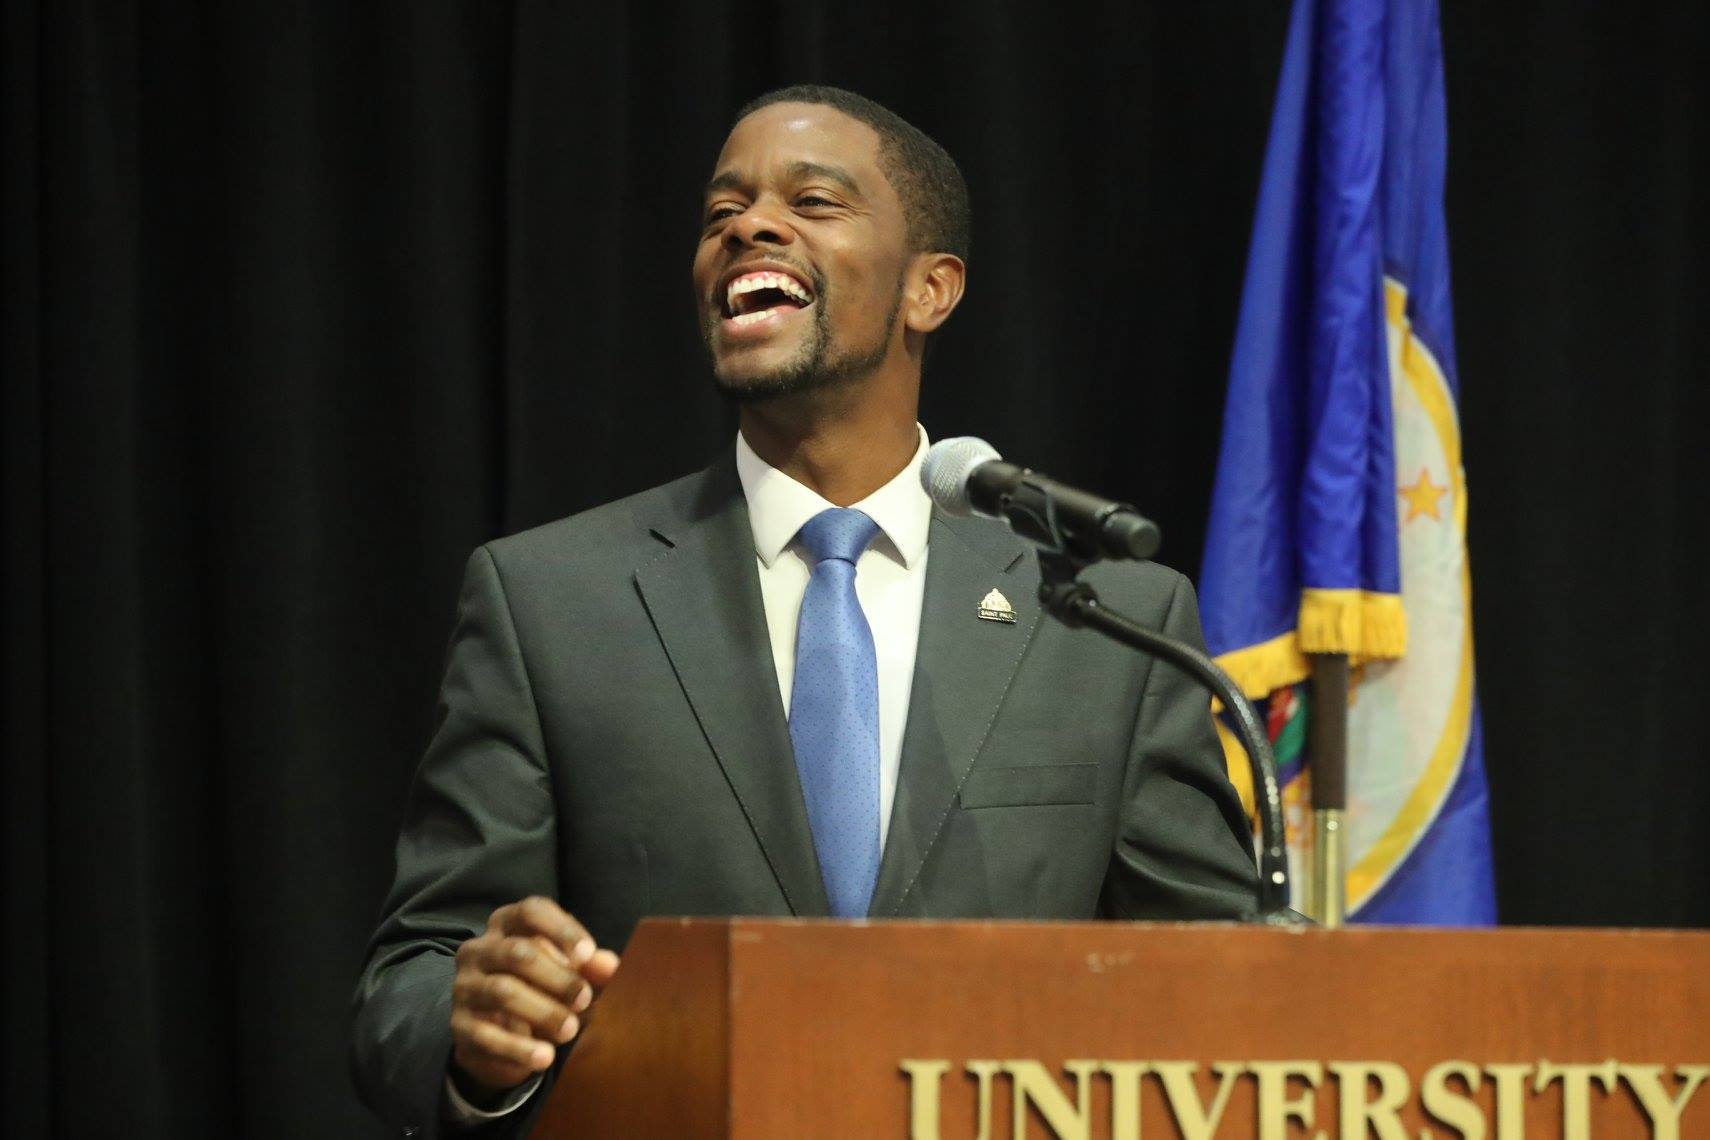 Honorable Mayor of St. Paul Melvin Carter